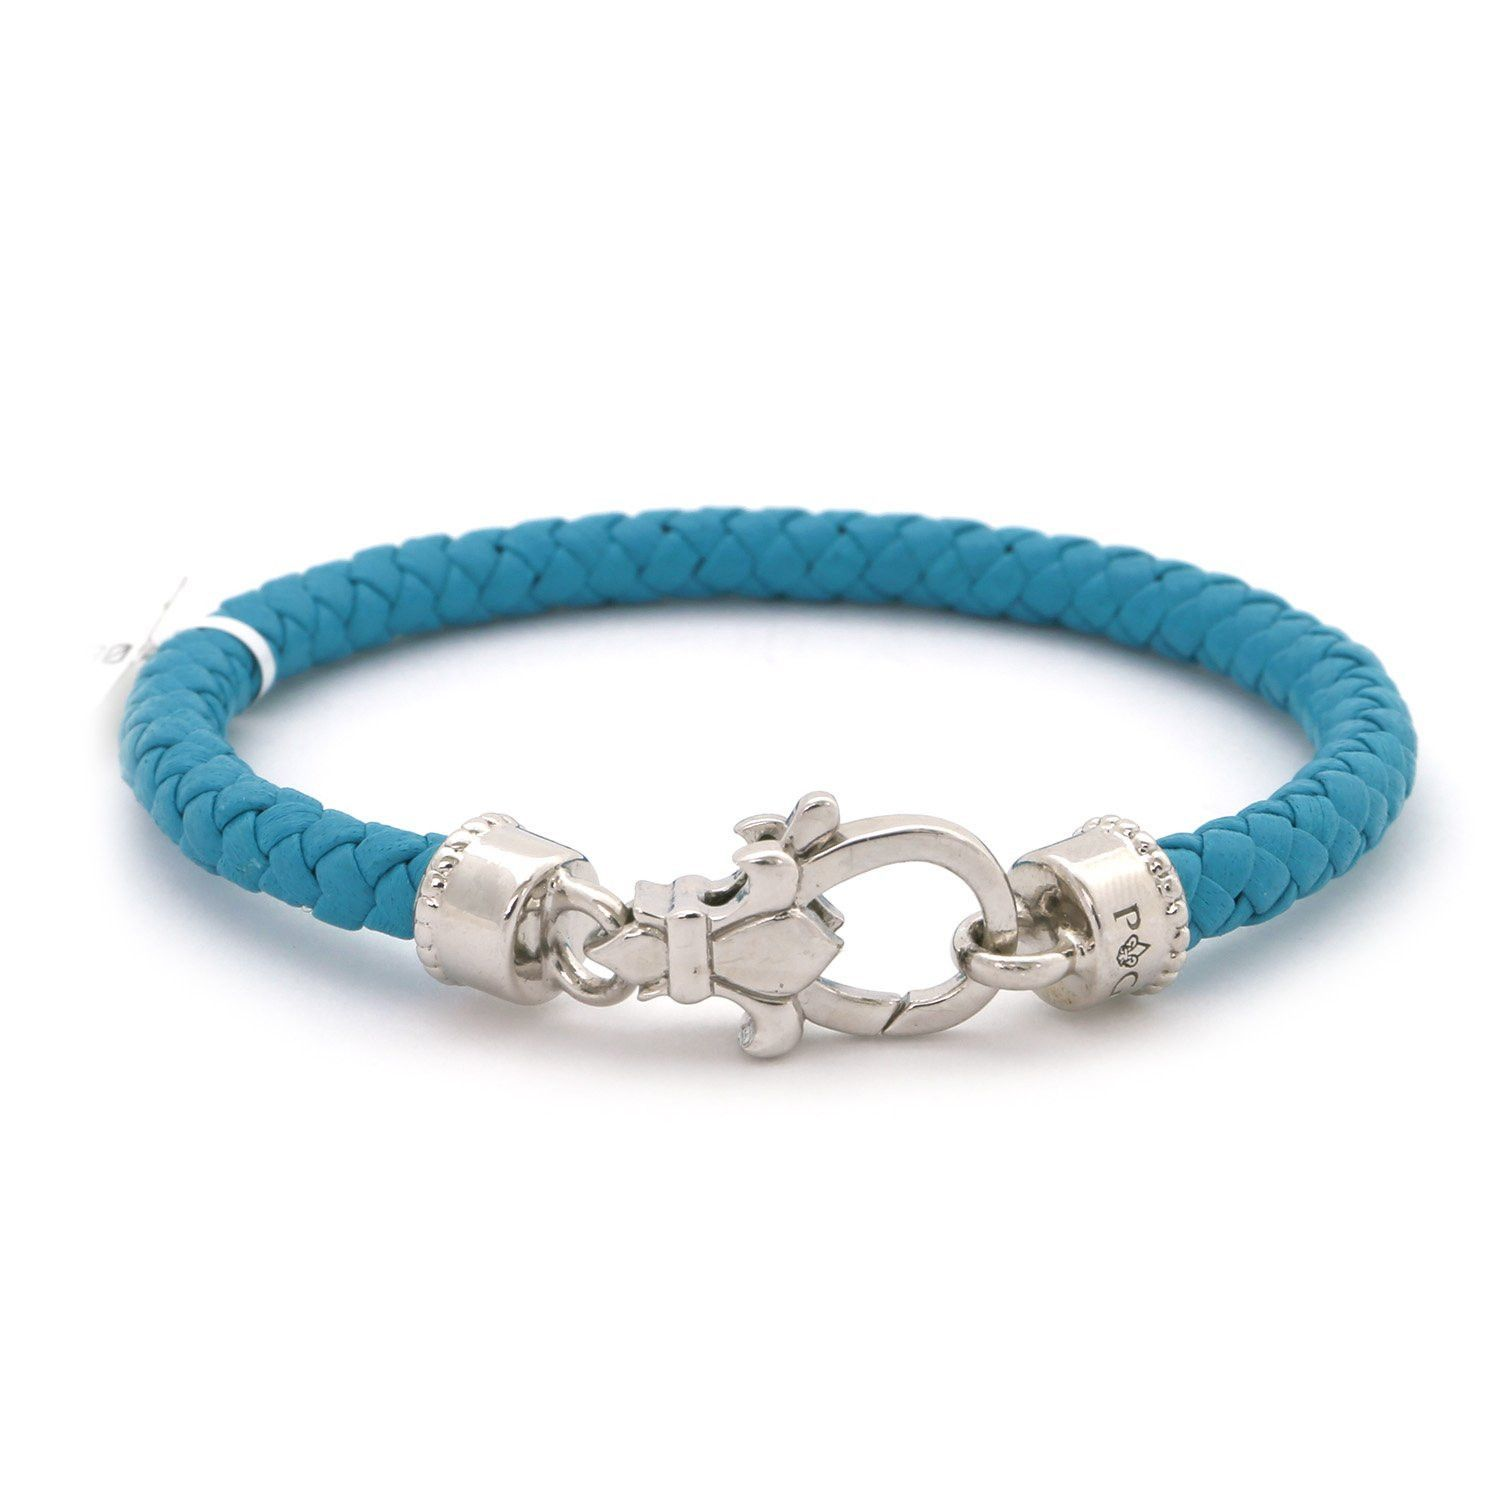 "Round Braided Turquoise Genuine Leather & Sterling Silver Fleur De Lis Clasp Woven 7.25"" Bracelet"